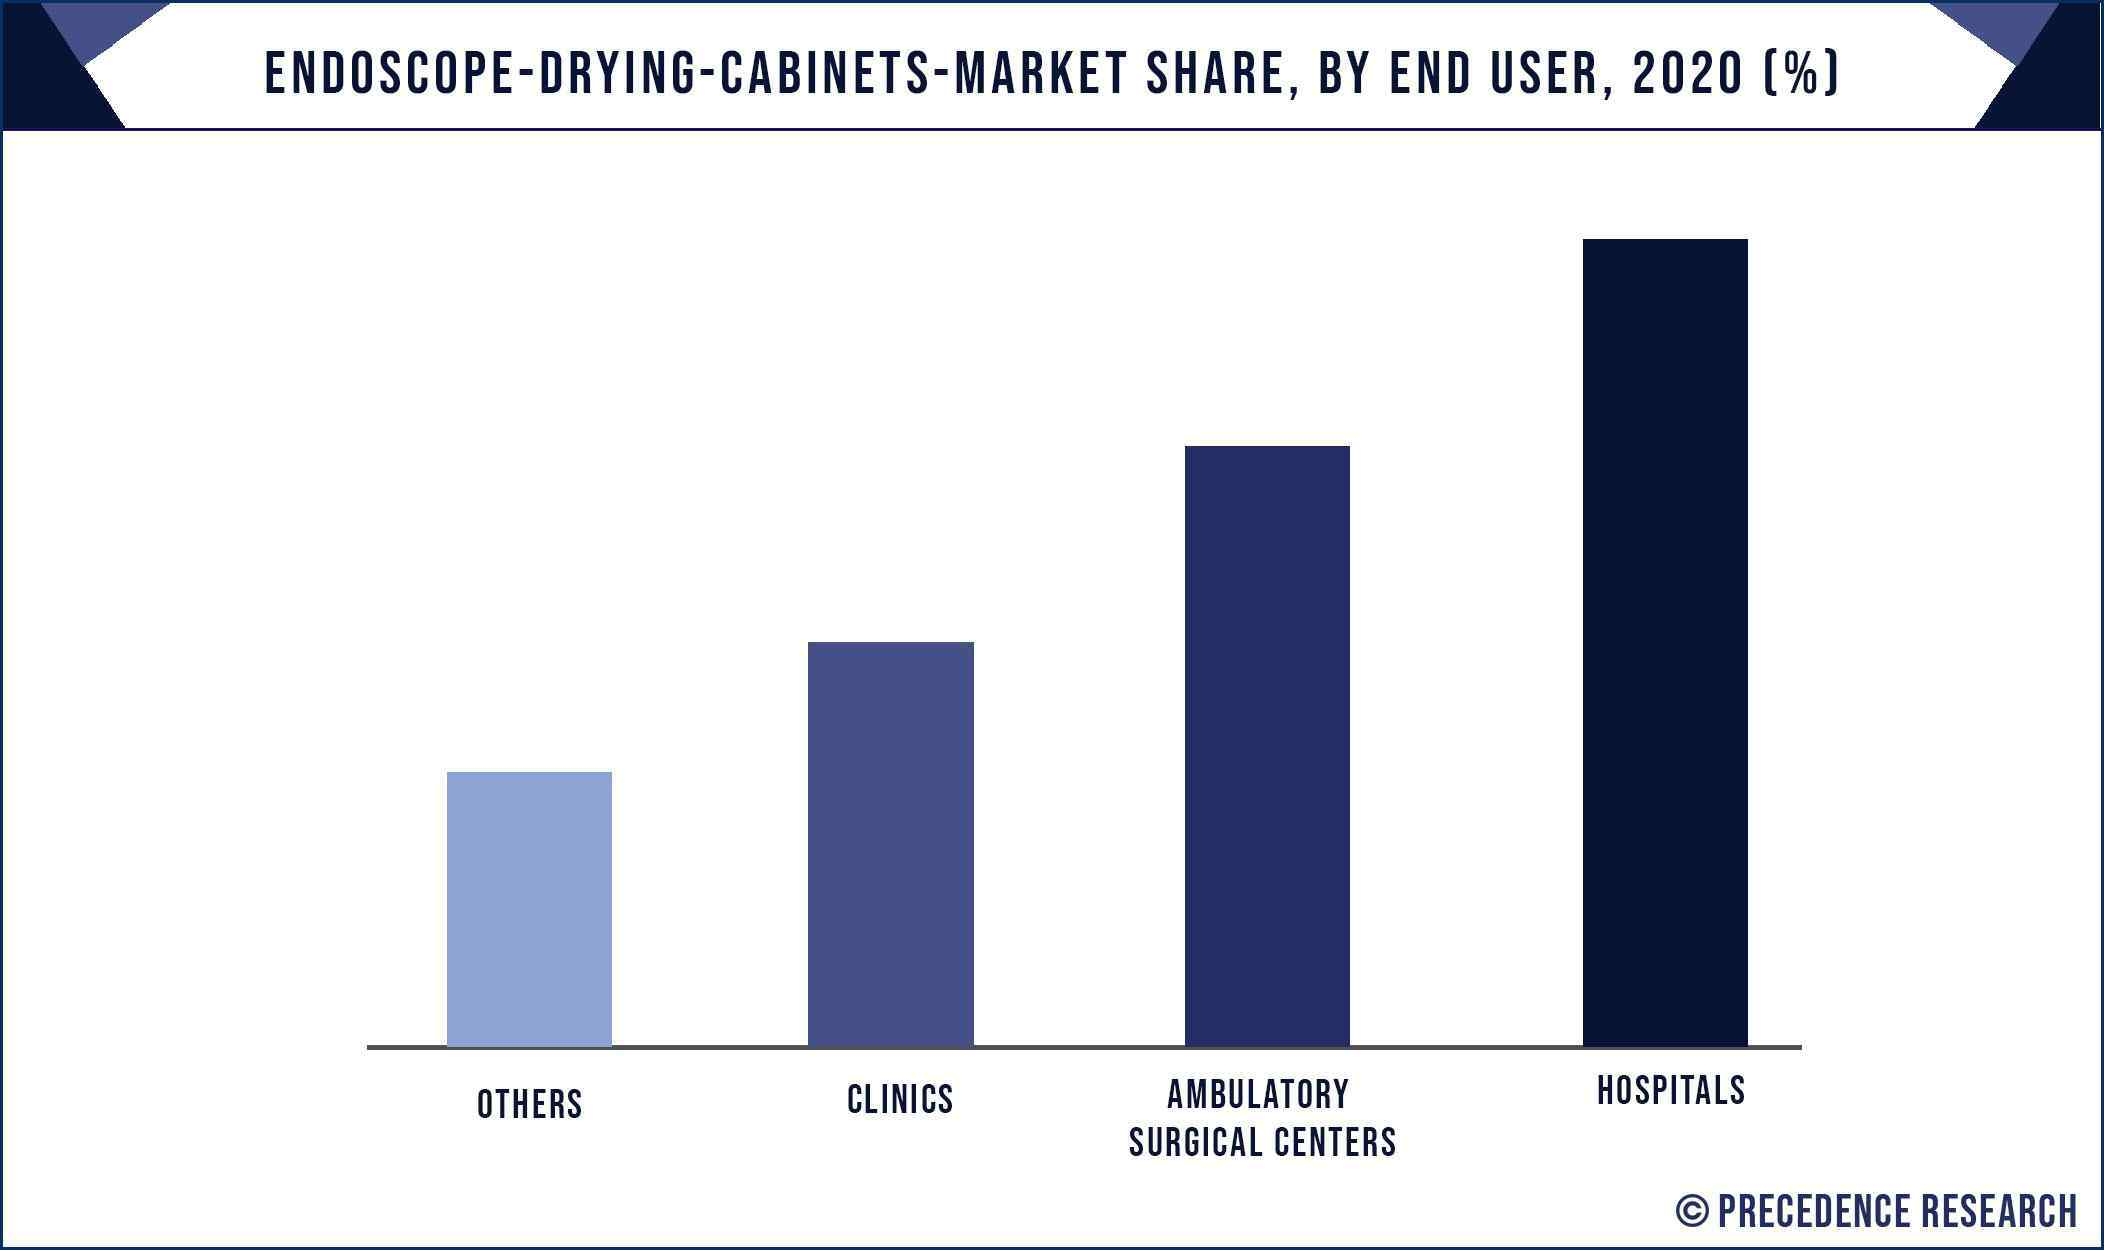 Endoscope Drying Cabinets Market Share, By End User, 2020 (%)